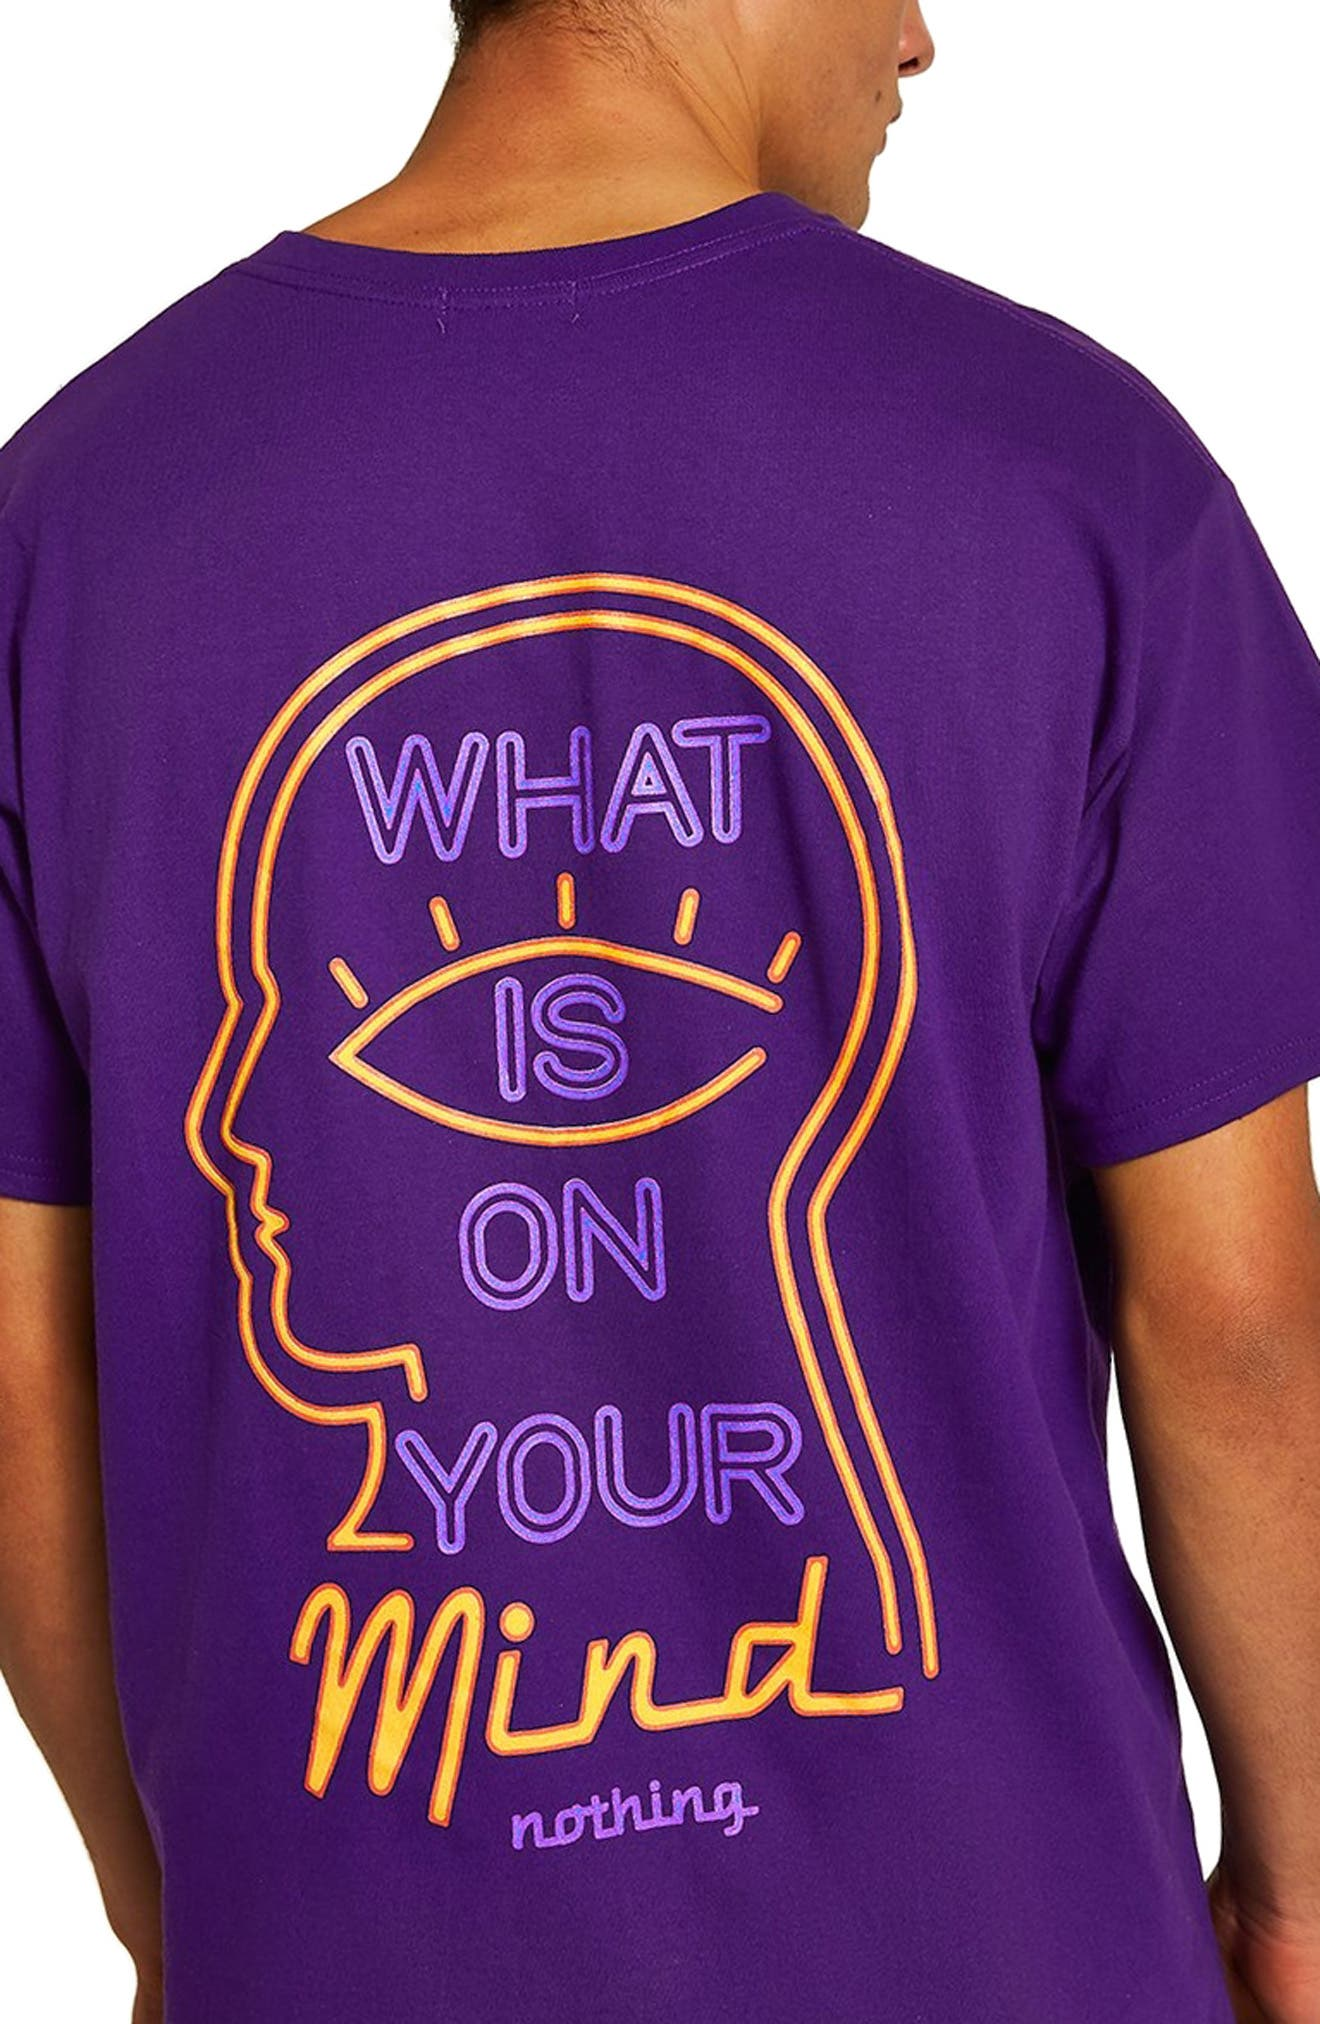 On Your Mind Graphic T-Shirt,                             Alternate thumbnail 3, color,                             500